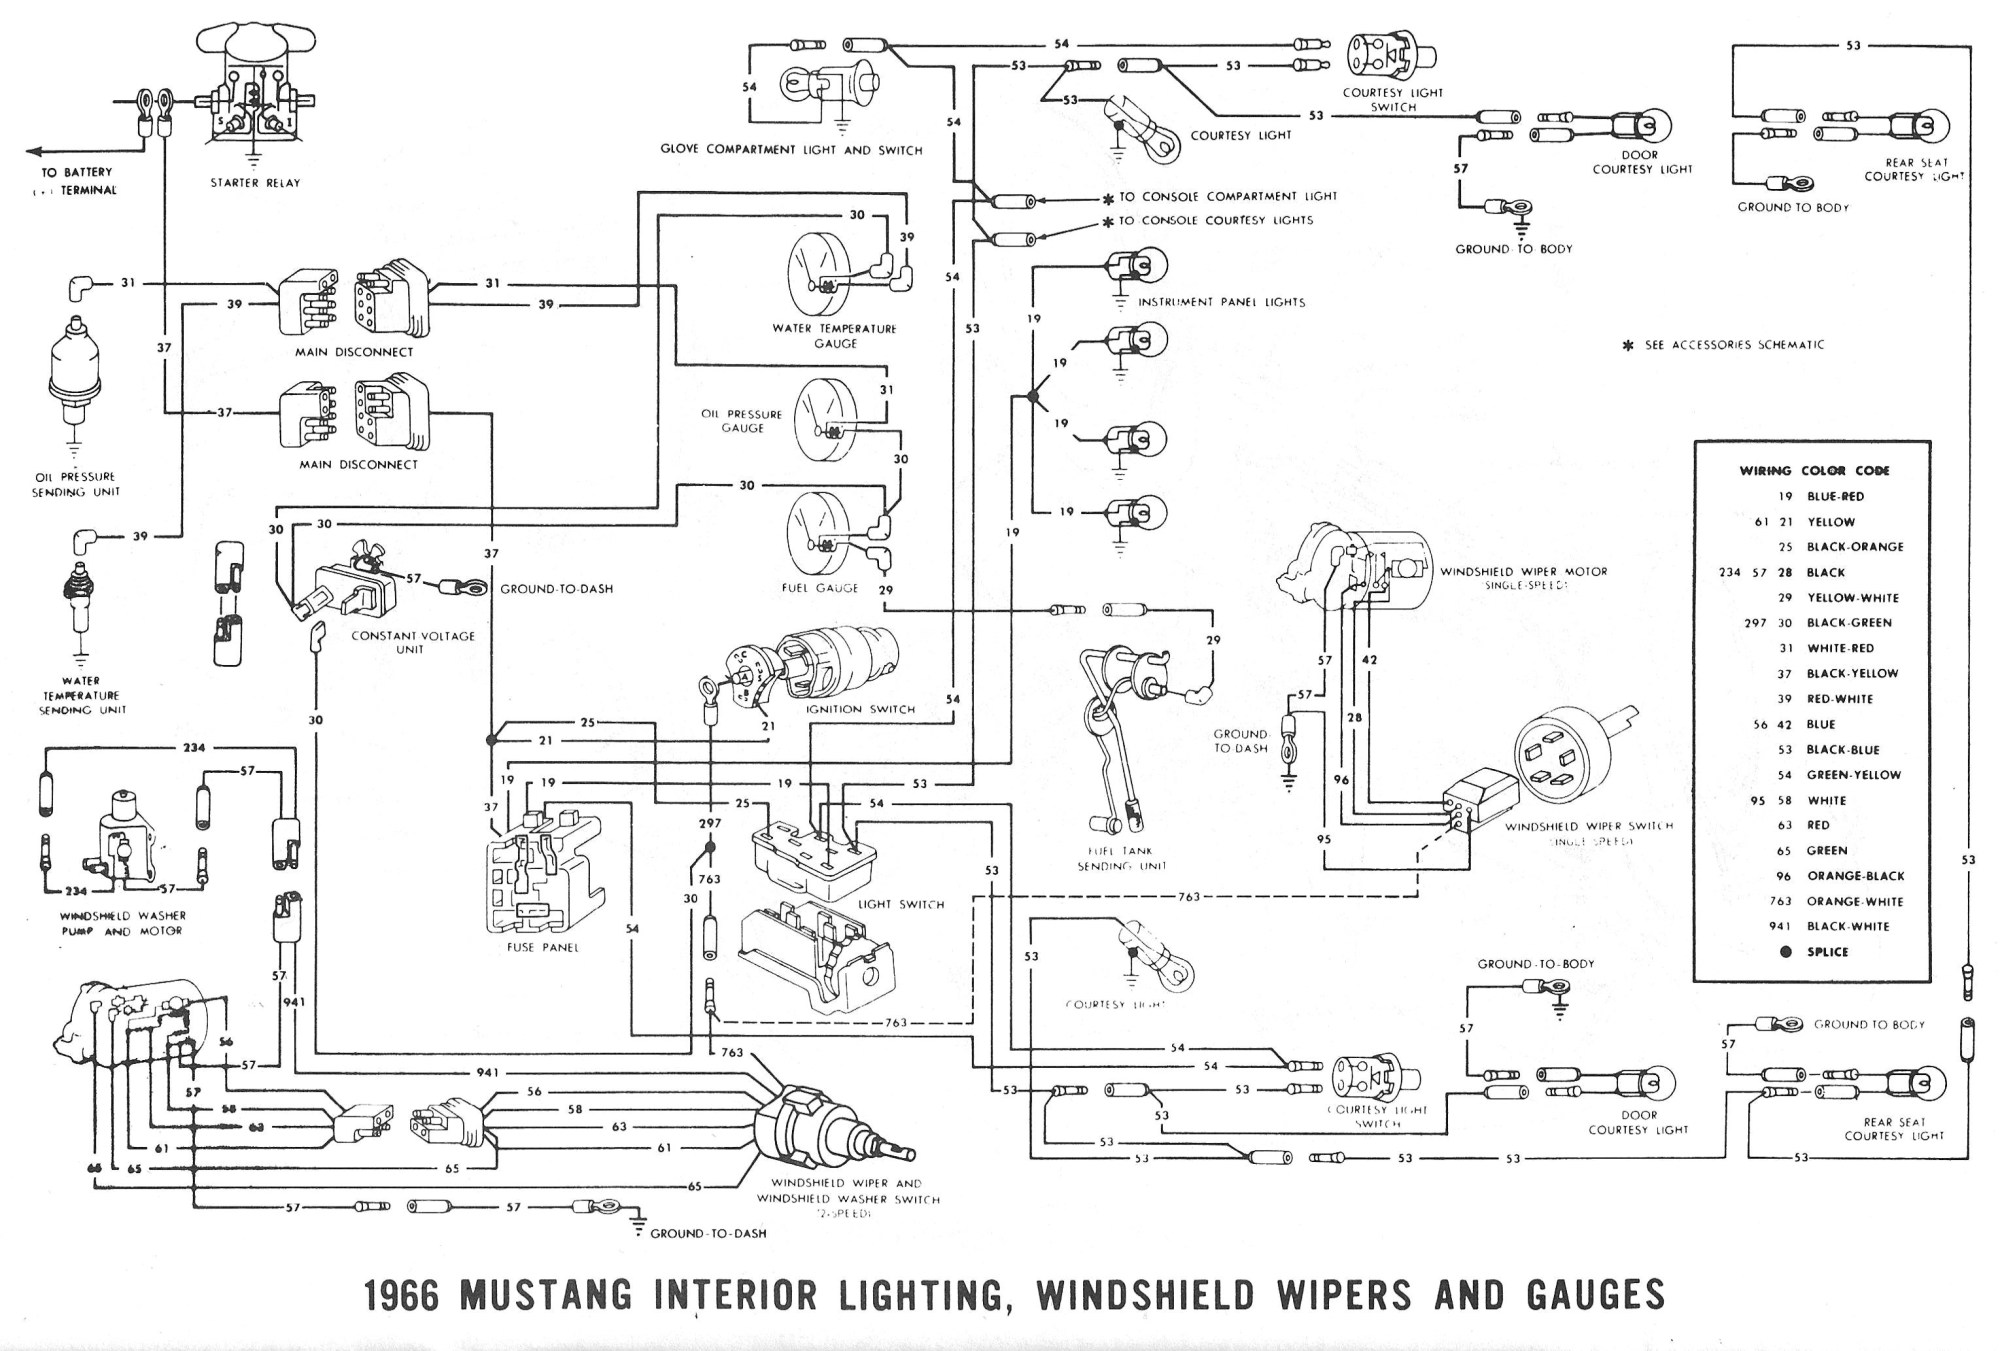 hight resolution of 1985 mustang gt wiring diagram wiring diagram show 1985 mustang alternator wiring diagram 1985 mustang wiring diagram